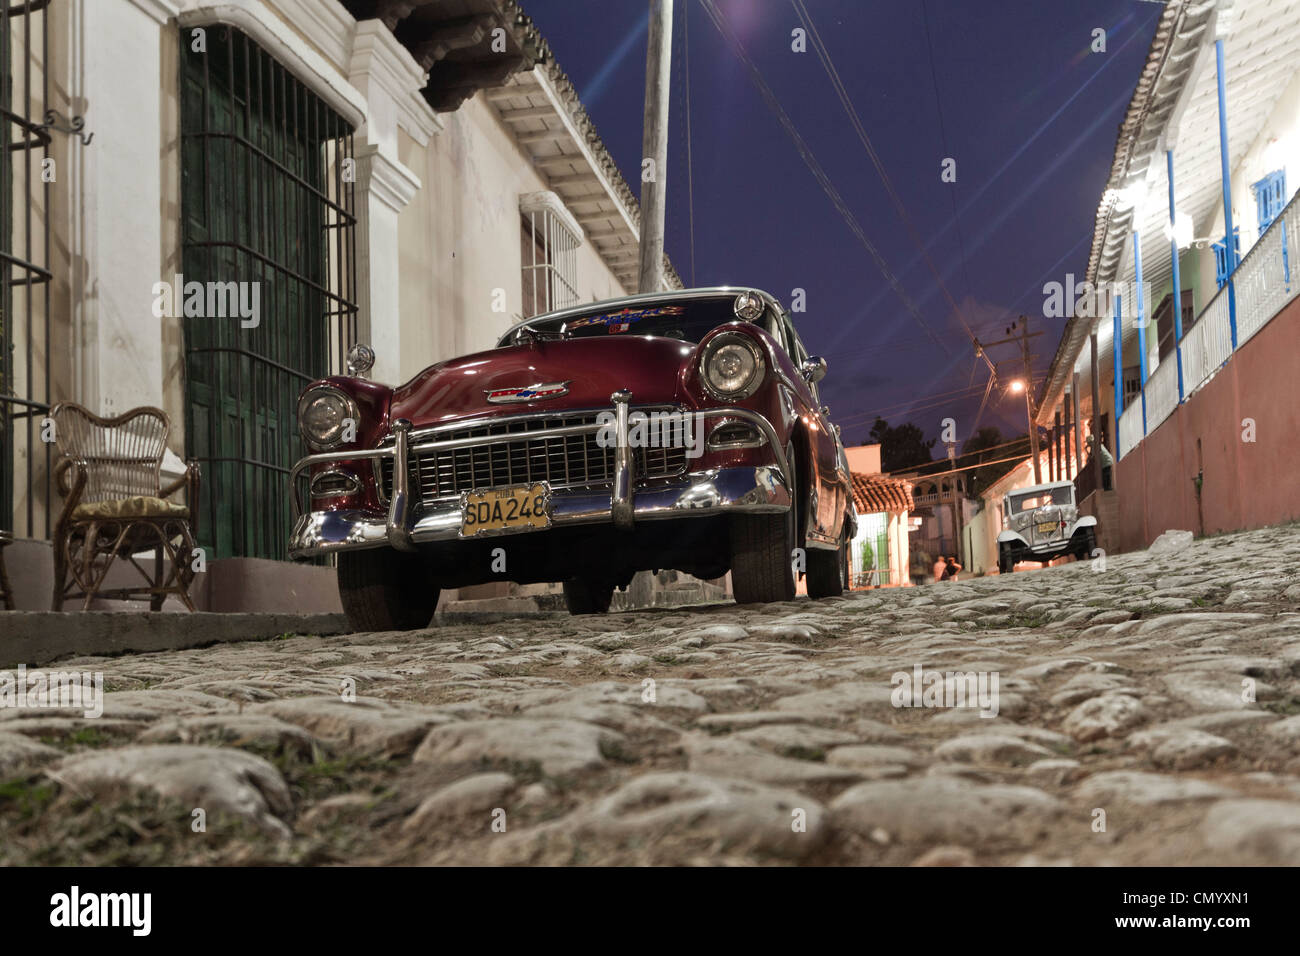 Oldtimer, Street with cobblestone, Trinidad, Cuba, Greater Antilles, Antilles, Carribean, West Indies, Central America, - Stock Image